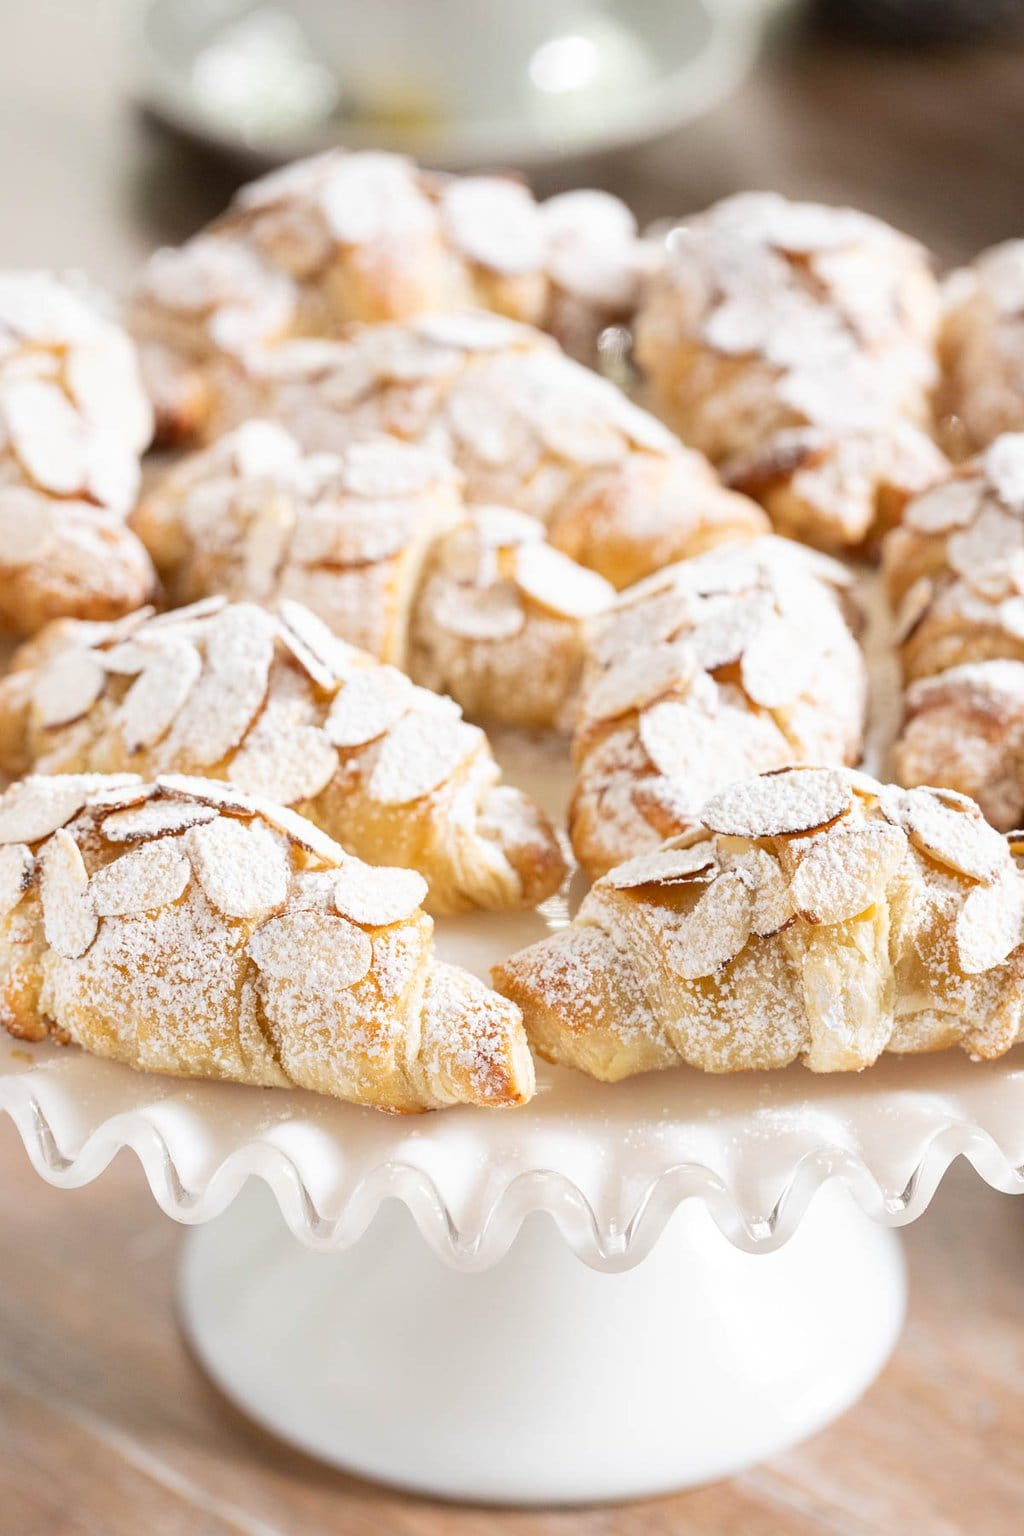 Vertical closeup photo of a batch of Ridiculously Easy Almond Croissants on a wavy white glass pedestal stand.